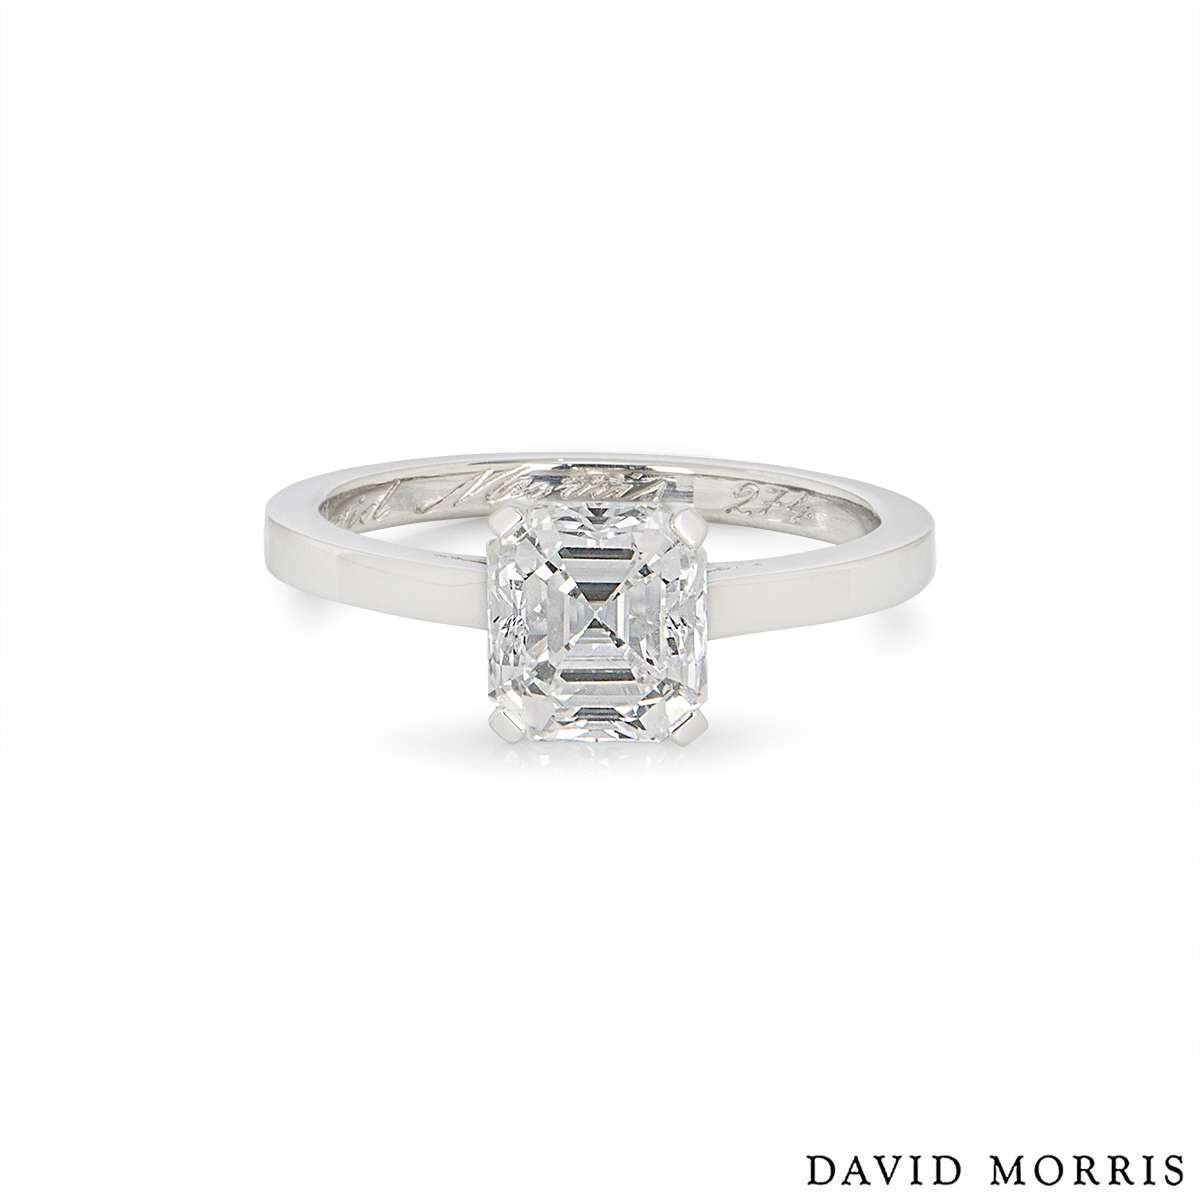 David Morris Platinum Emerald Cut Ring 1.73ct D/VS2